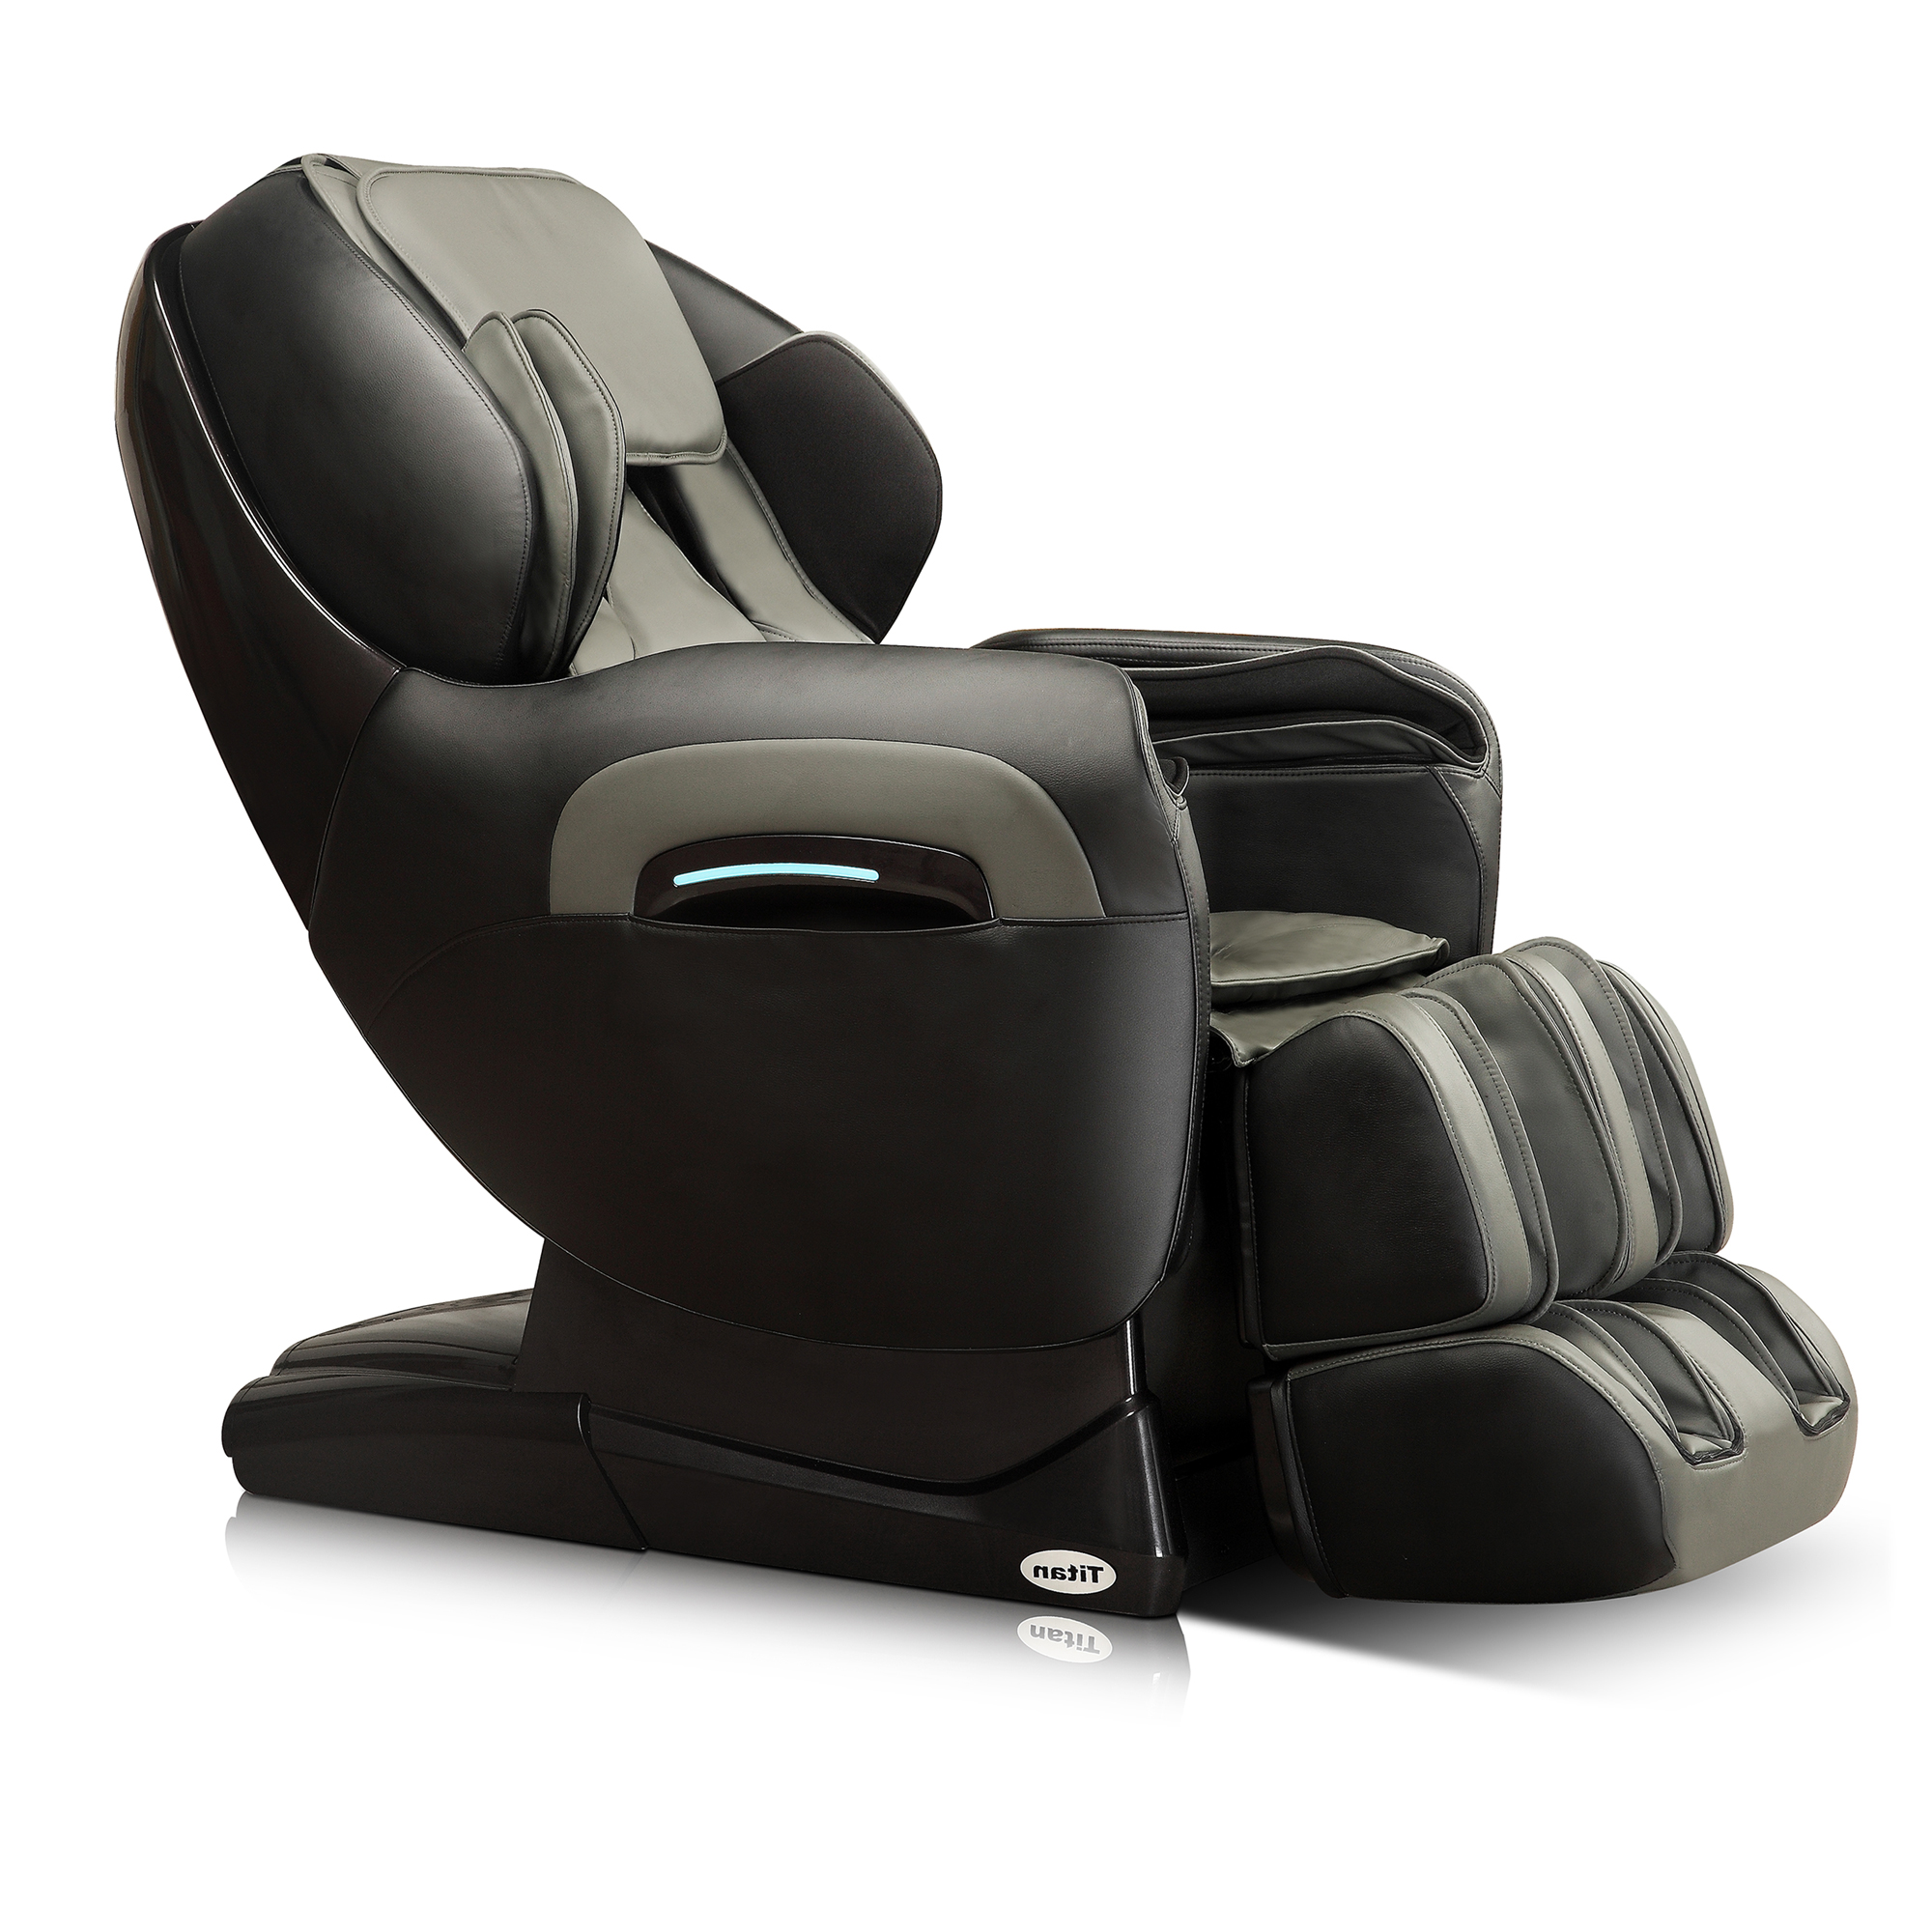 Titan Pro 8400 Massage Chair estockchair